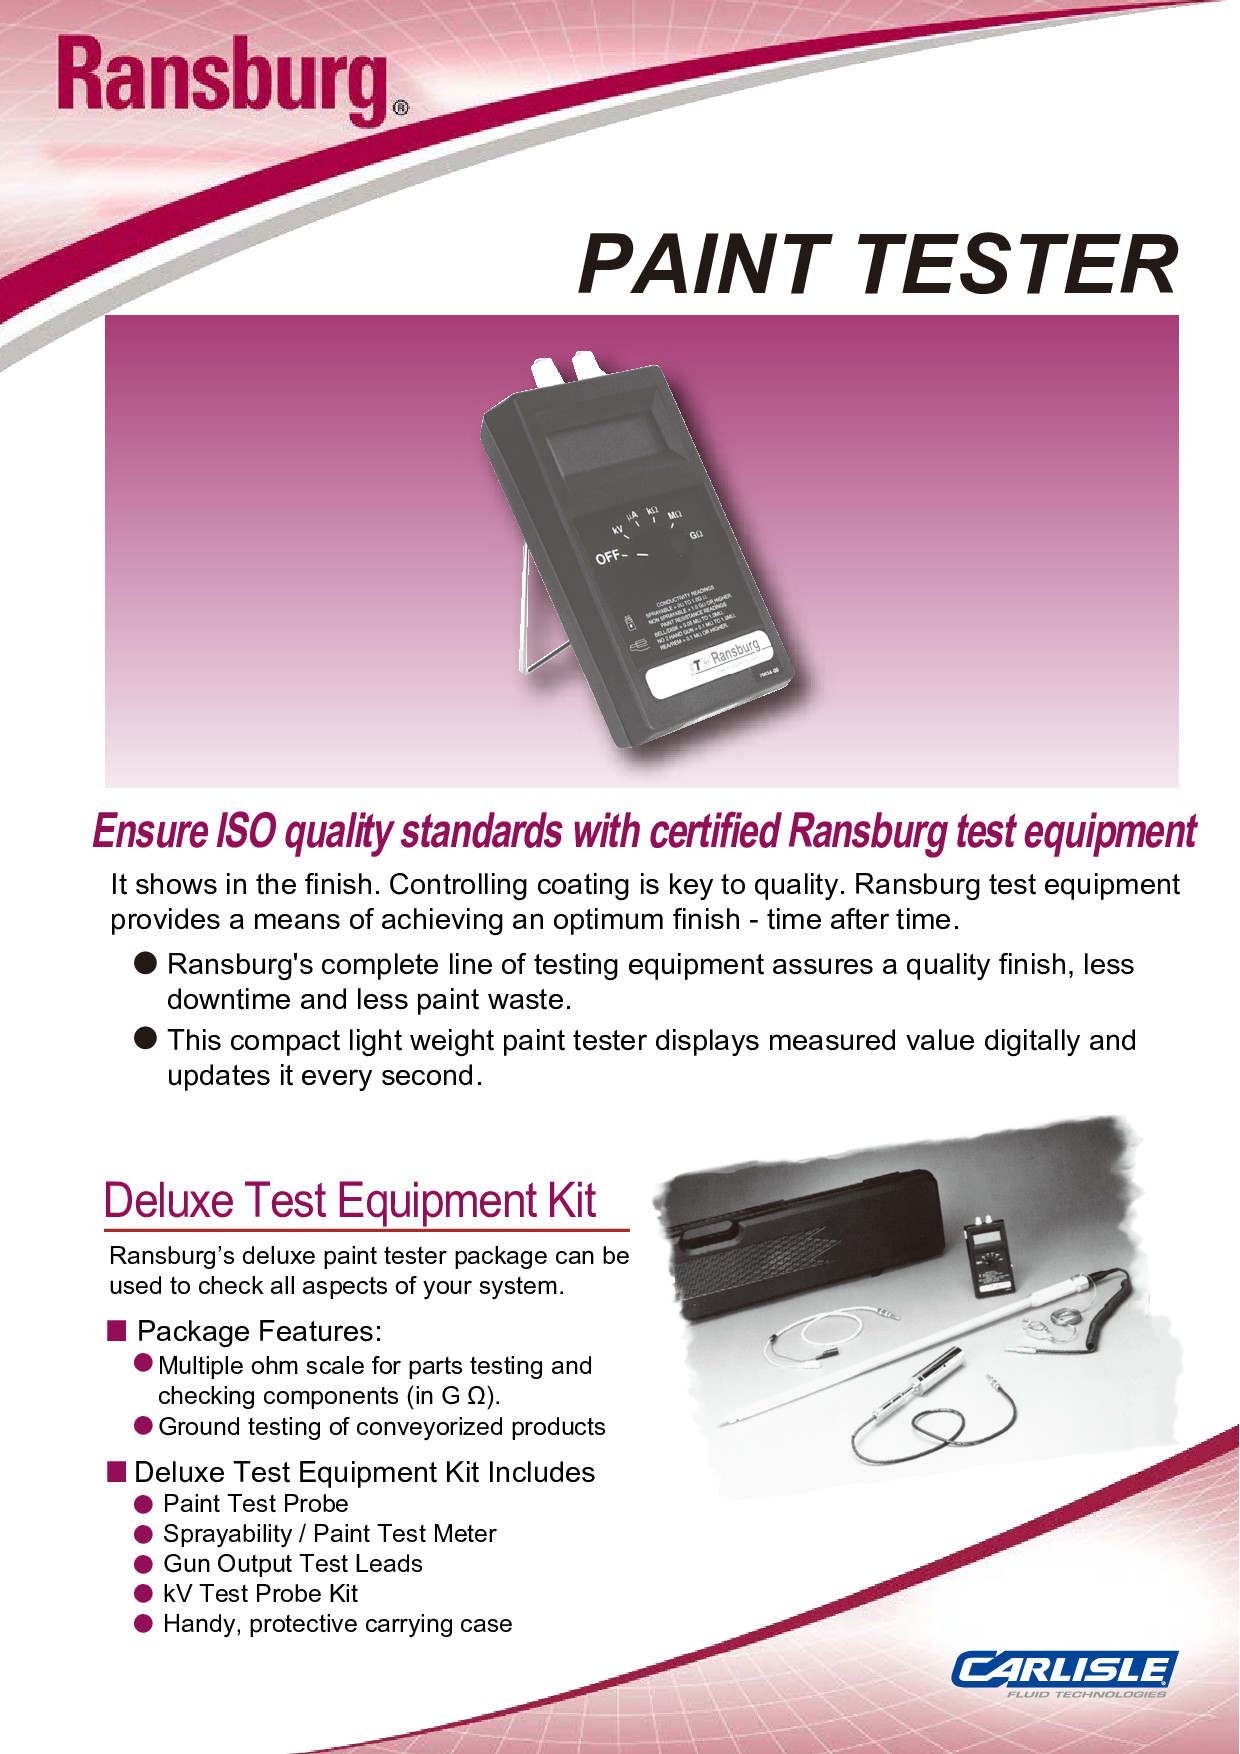 PaintTester